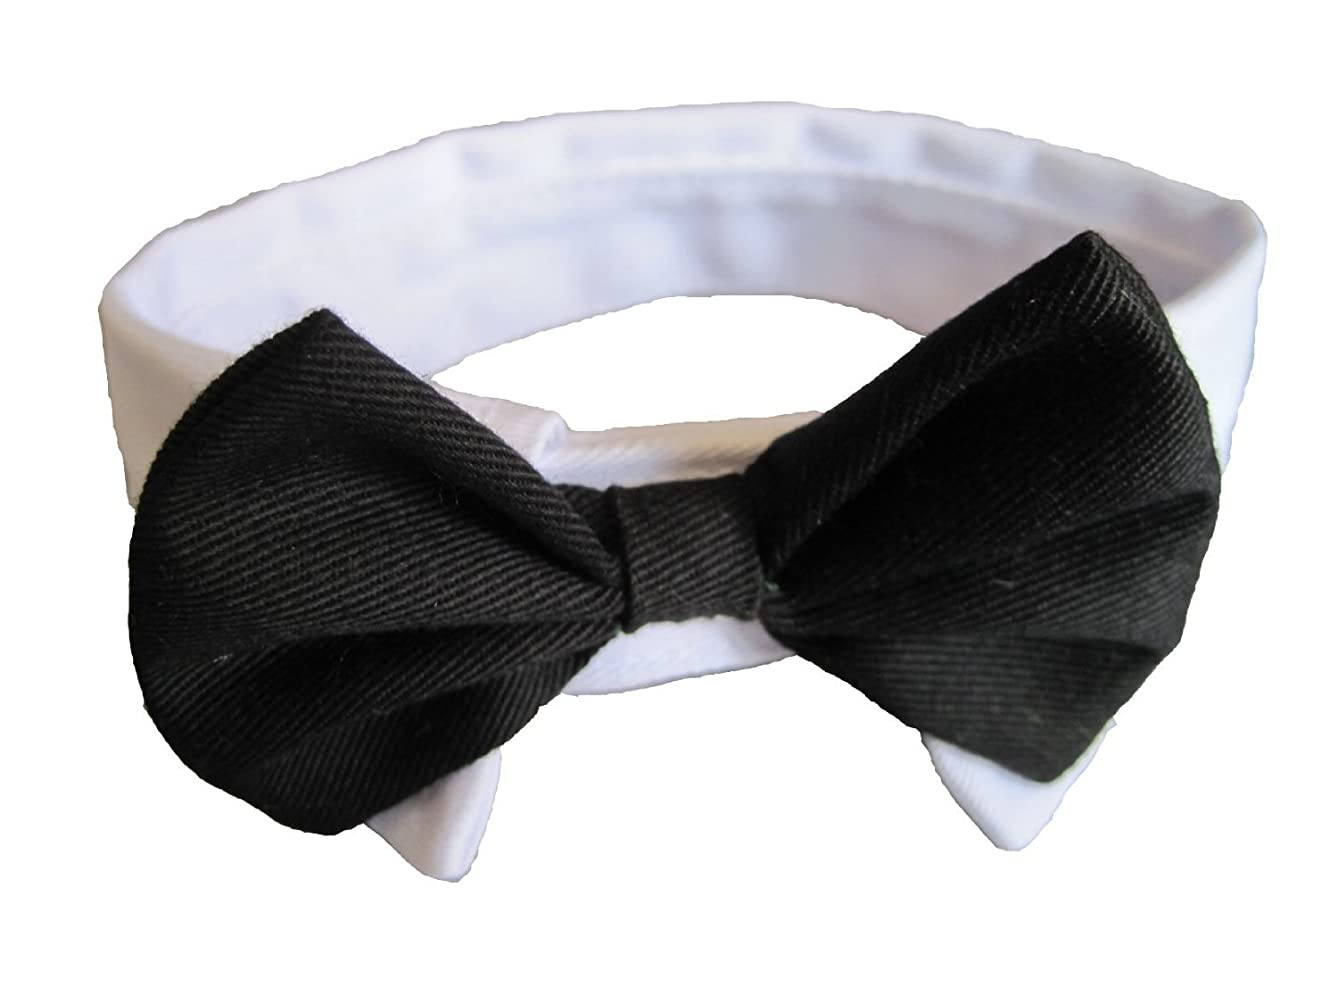 Dogs Kingdom Pet Adjustable Formal Bow Tie and Collar for dogs cat puppy supplies Black Extra Small 9-10-inches